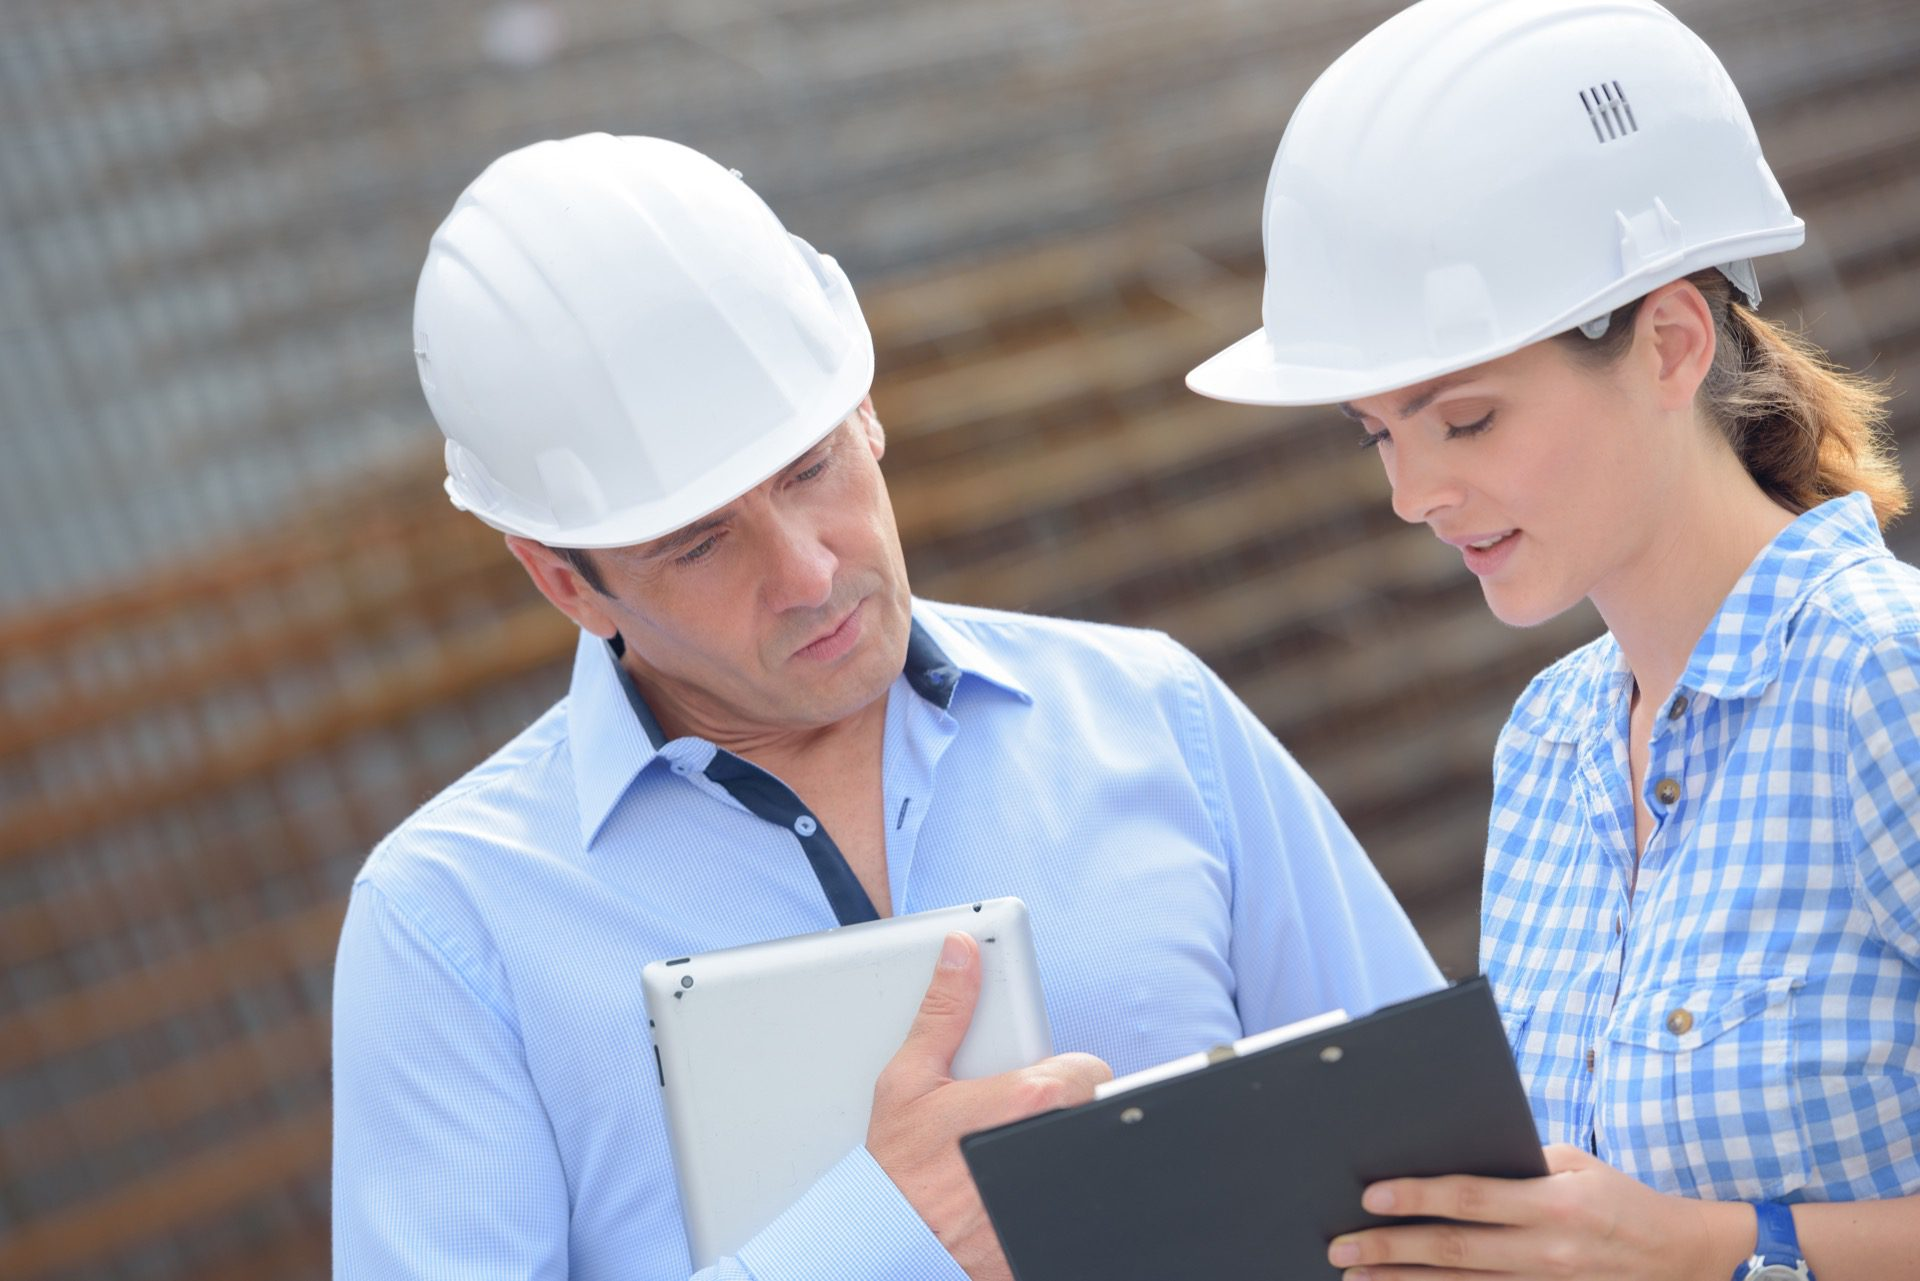 Woman and man in hardhats reviewing commercial real estate appraisal